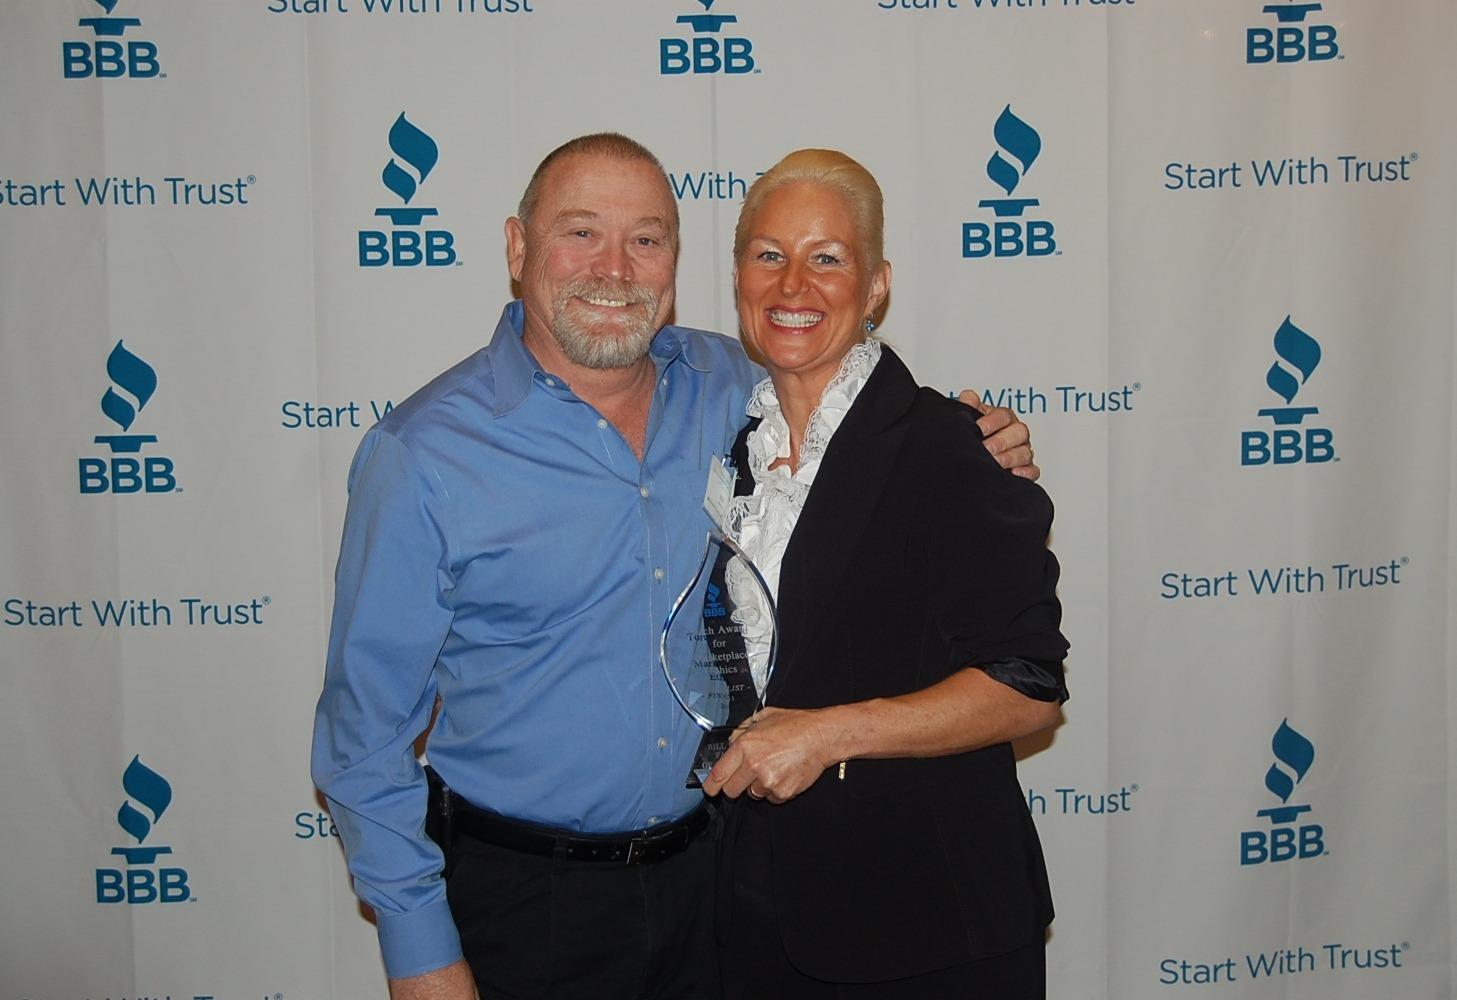 San Diego Plumbing Company owners, Bill and Tina Howe accepting the BBB Torch Award